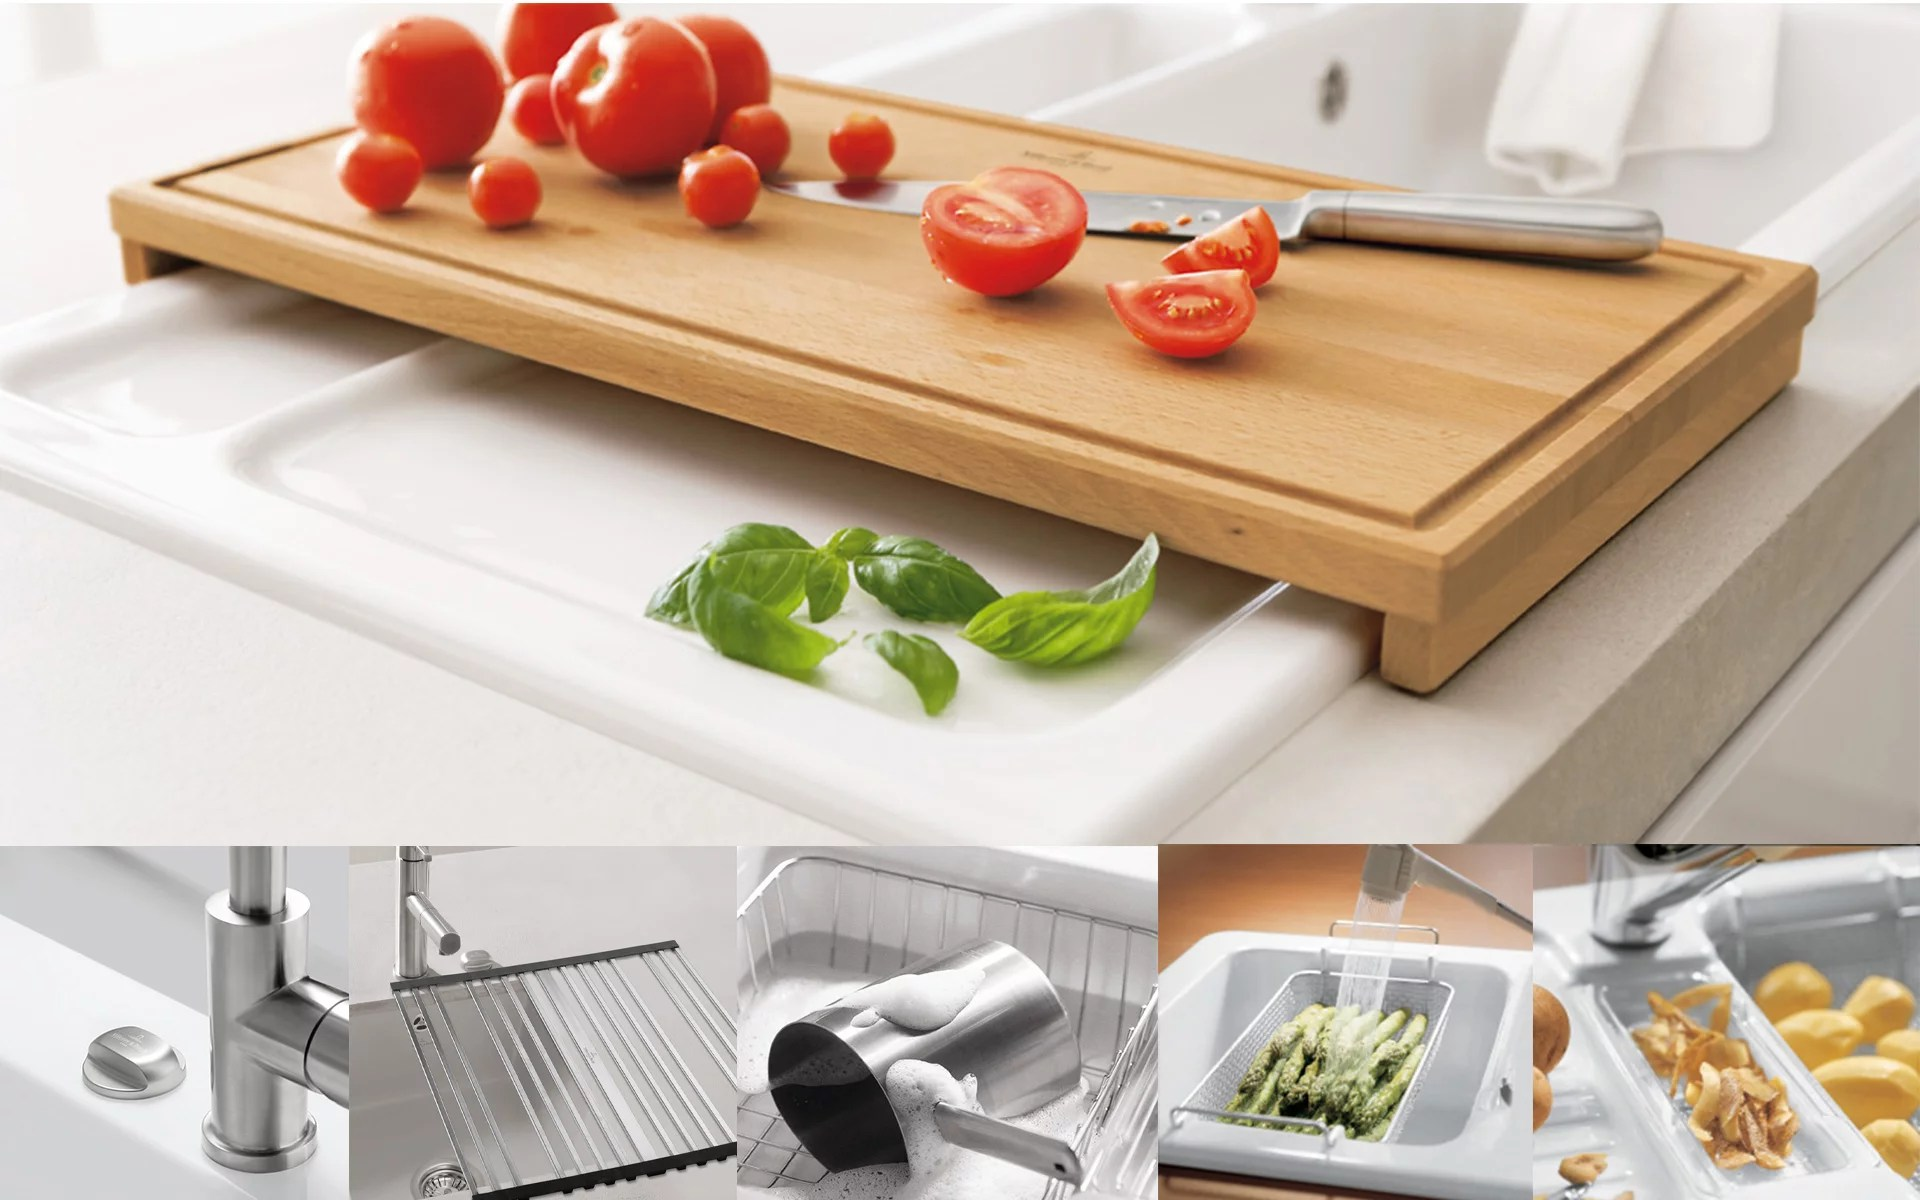 Accesoir Cuisine Kitchen Accessories From Villeroy And Boch For More Fun In